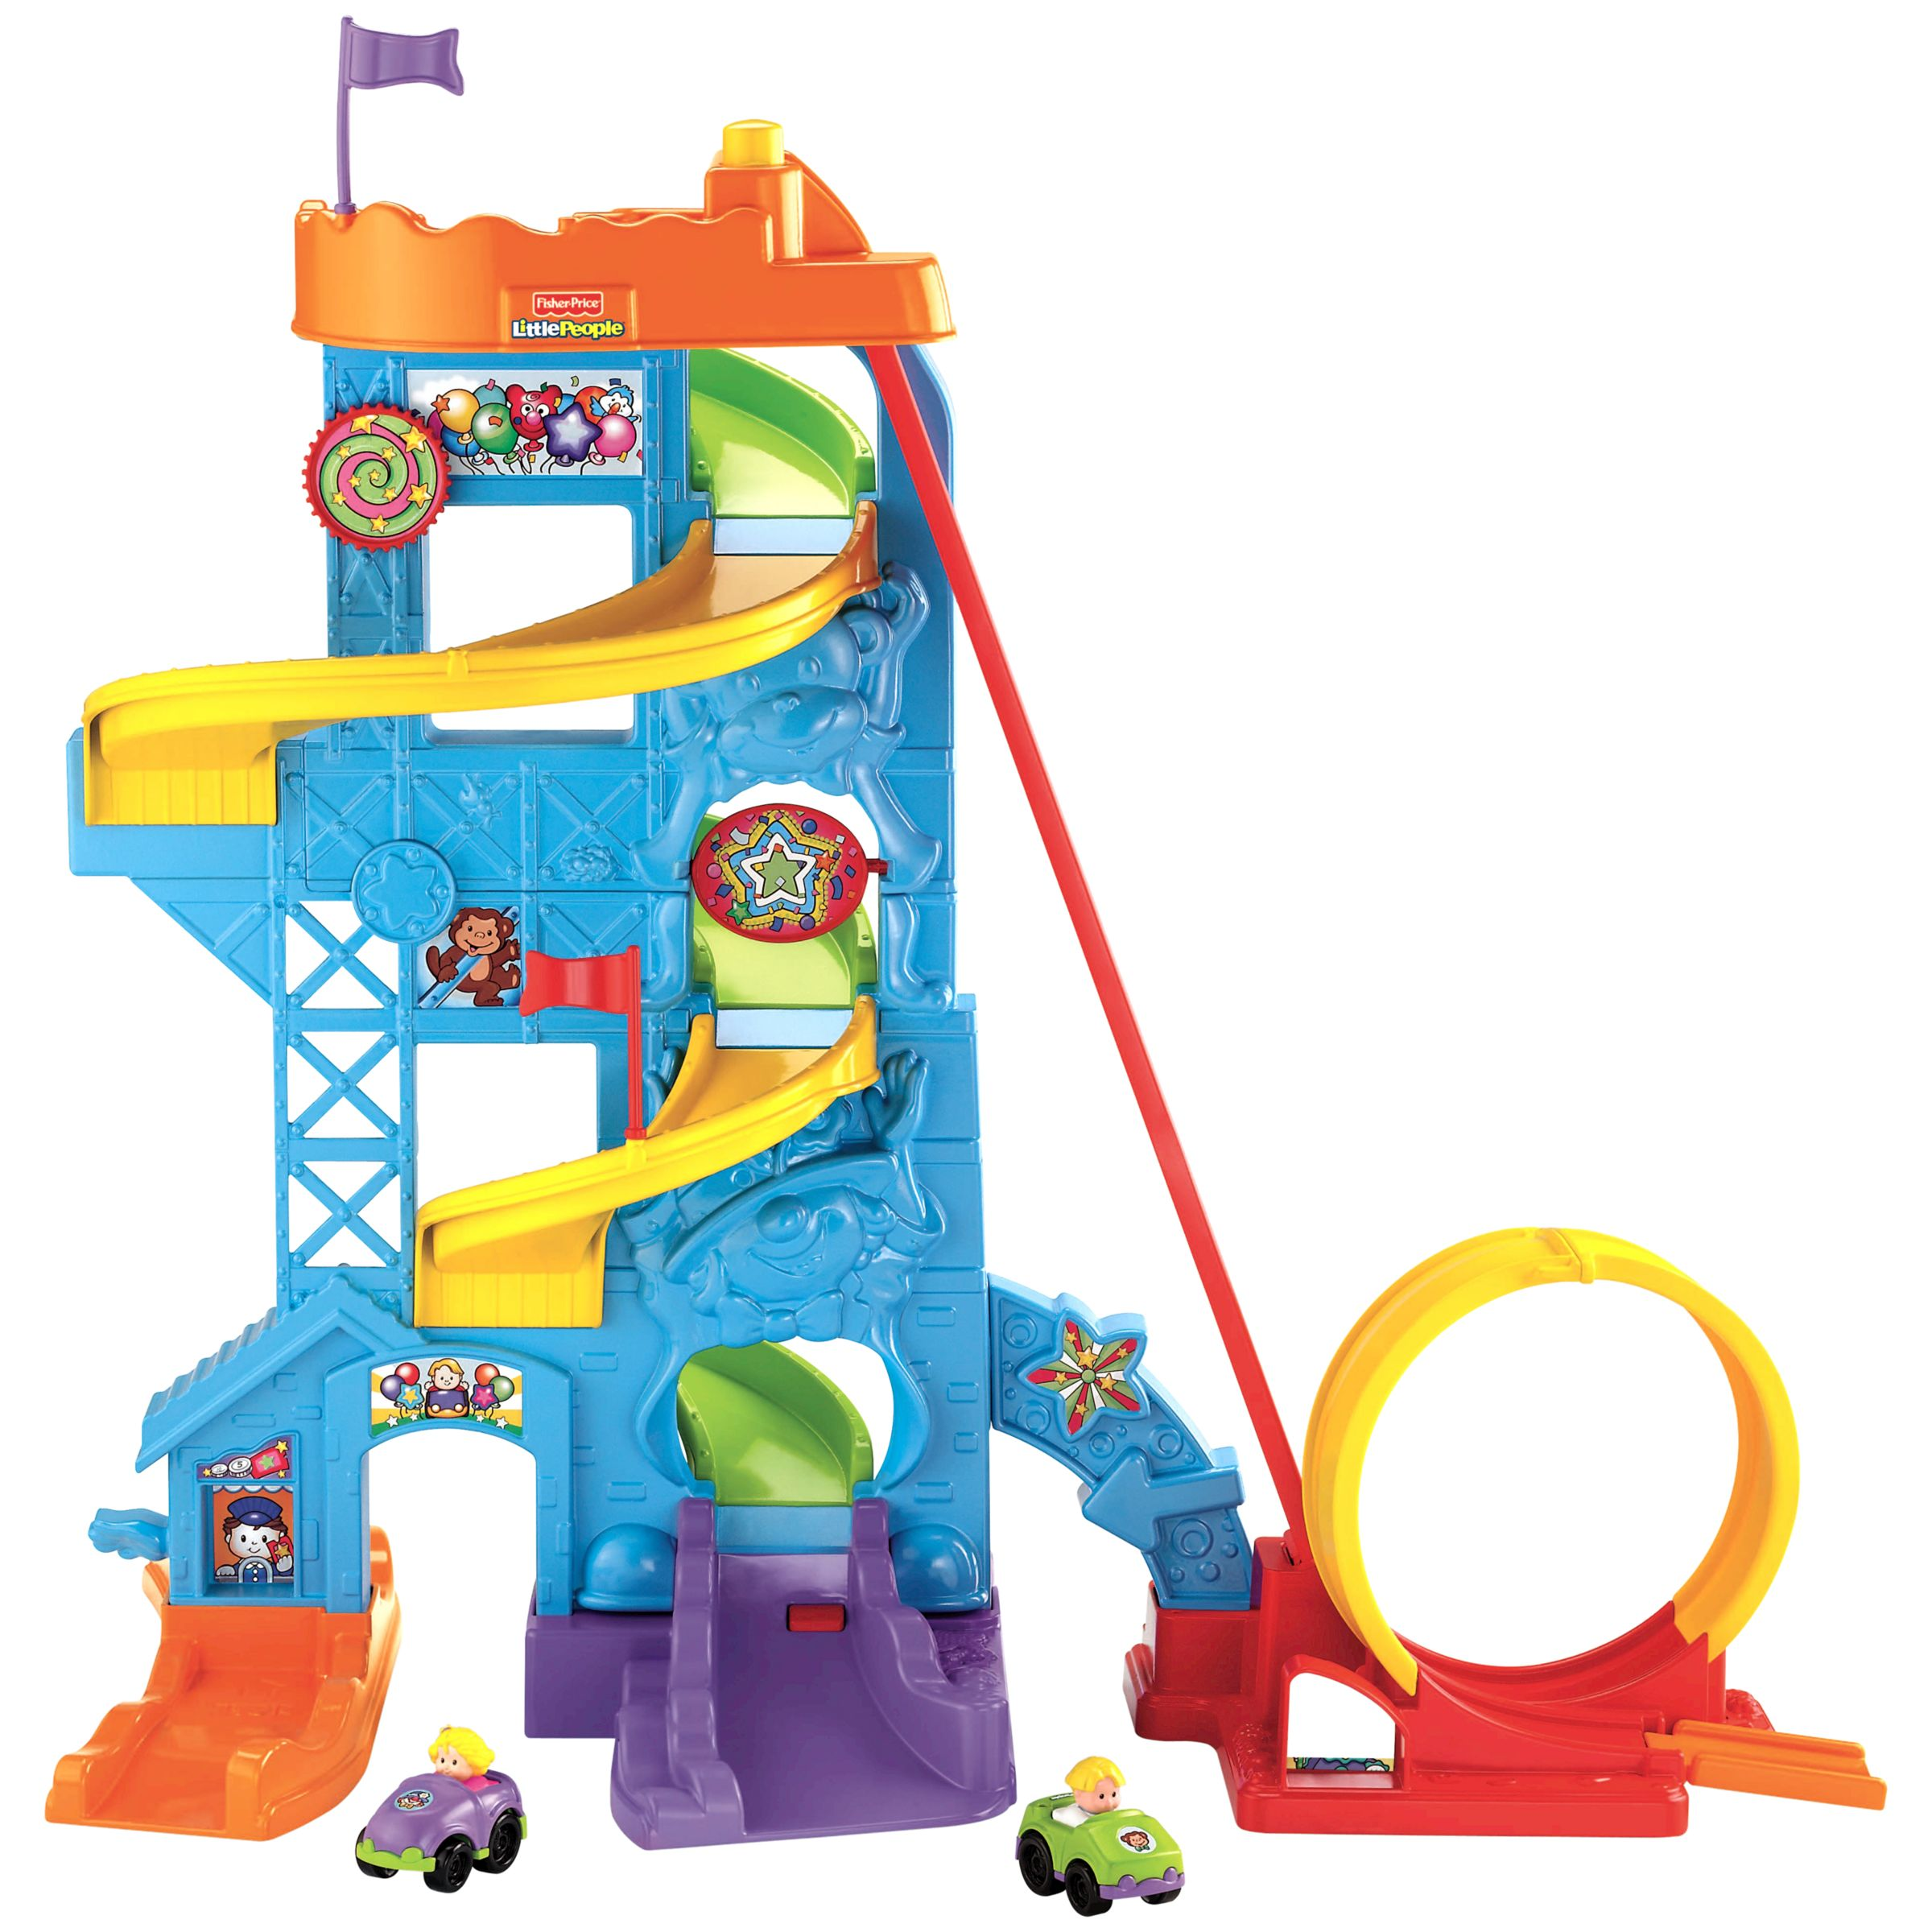 Fisher-Price Wheelies Stand and Play Fun Park